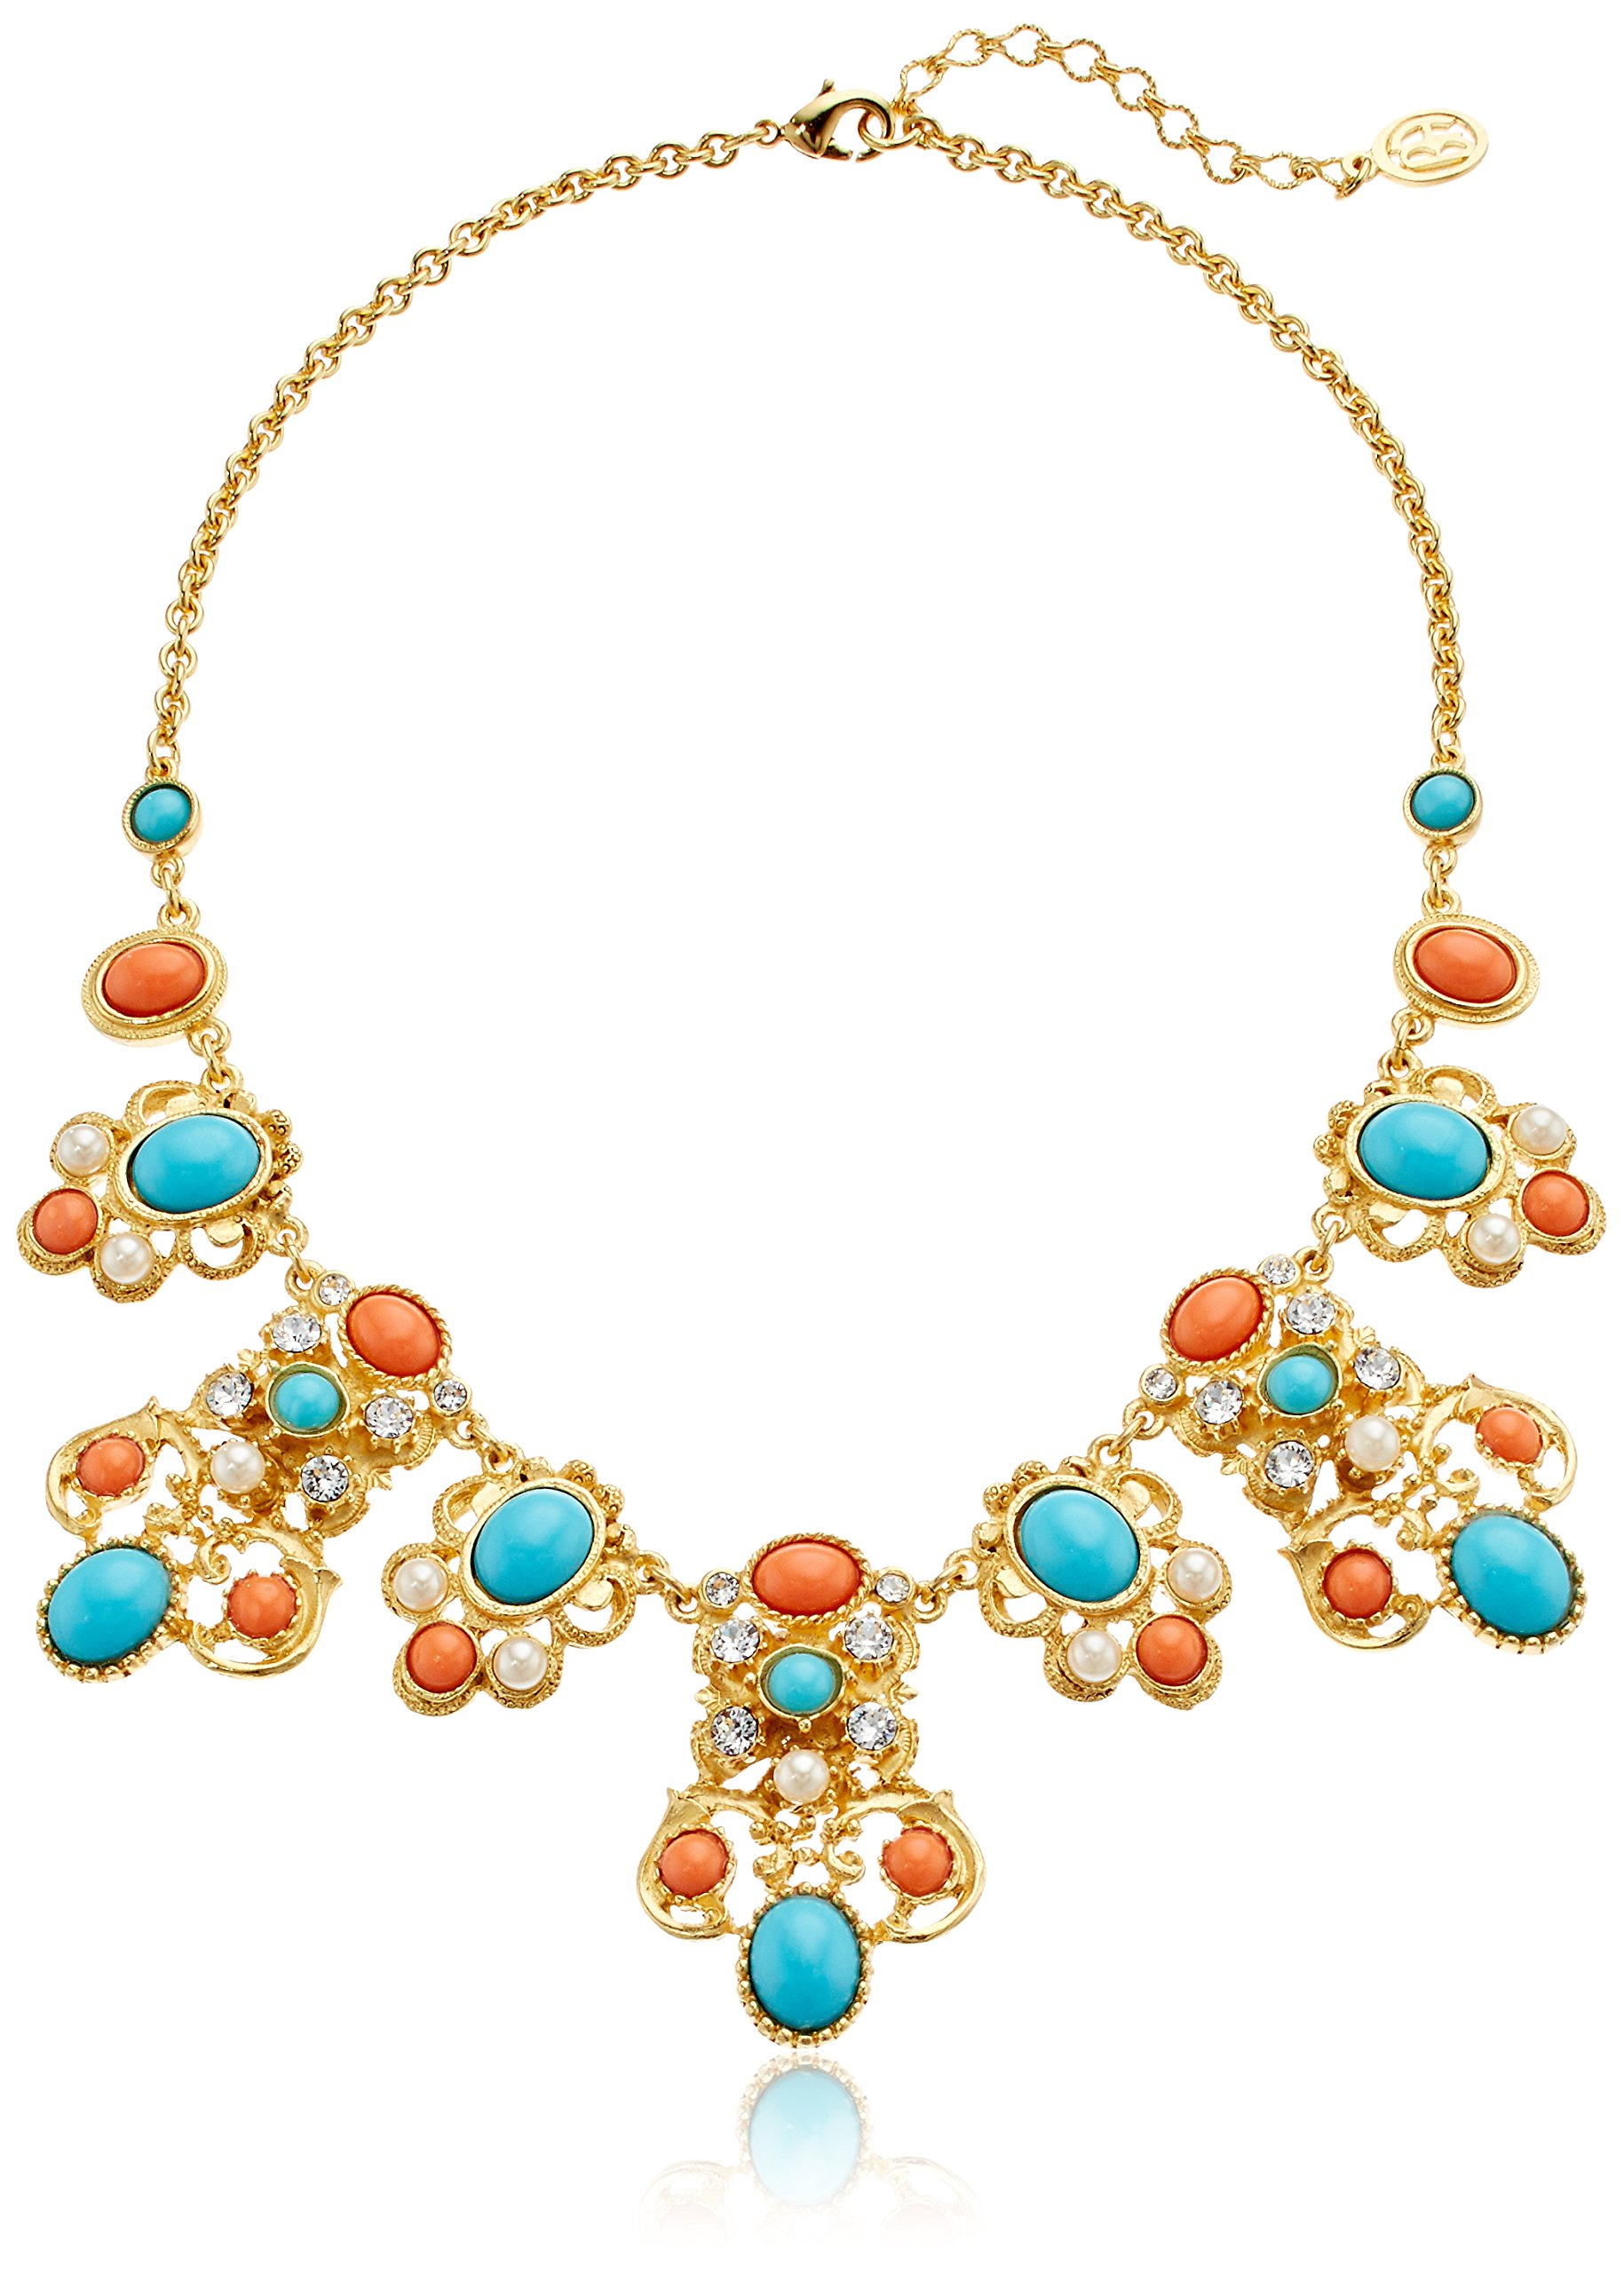 Ben-Amun Jewelry Santorini Turquoise Coral Stone Gold Pendant Necklace, 15'' + 2'' Extender